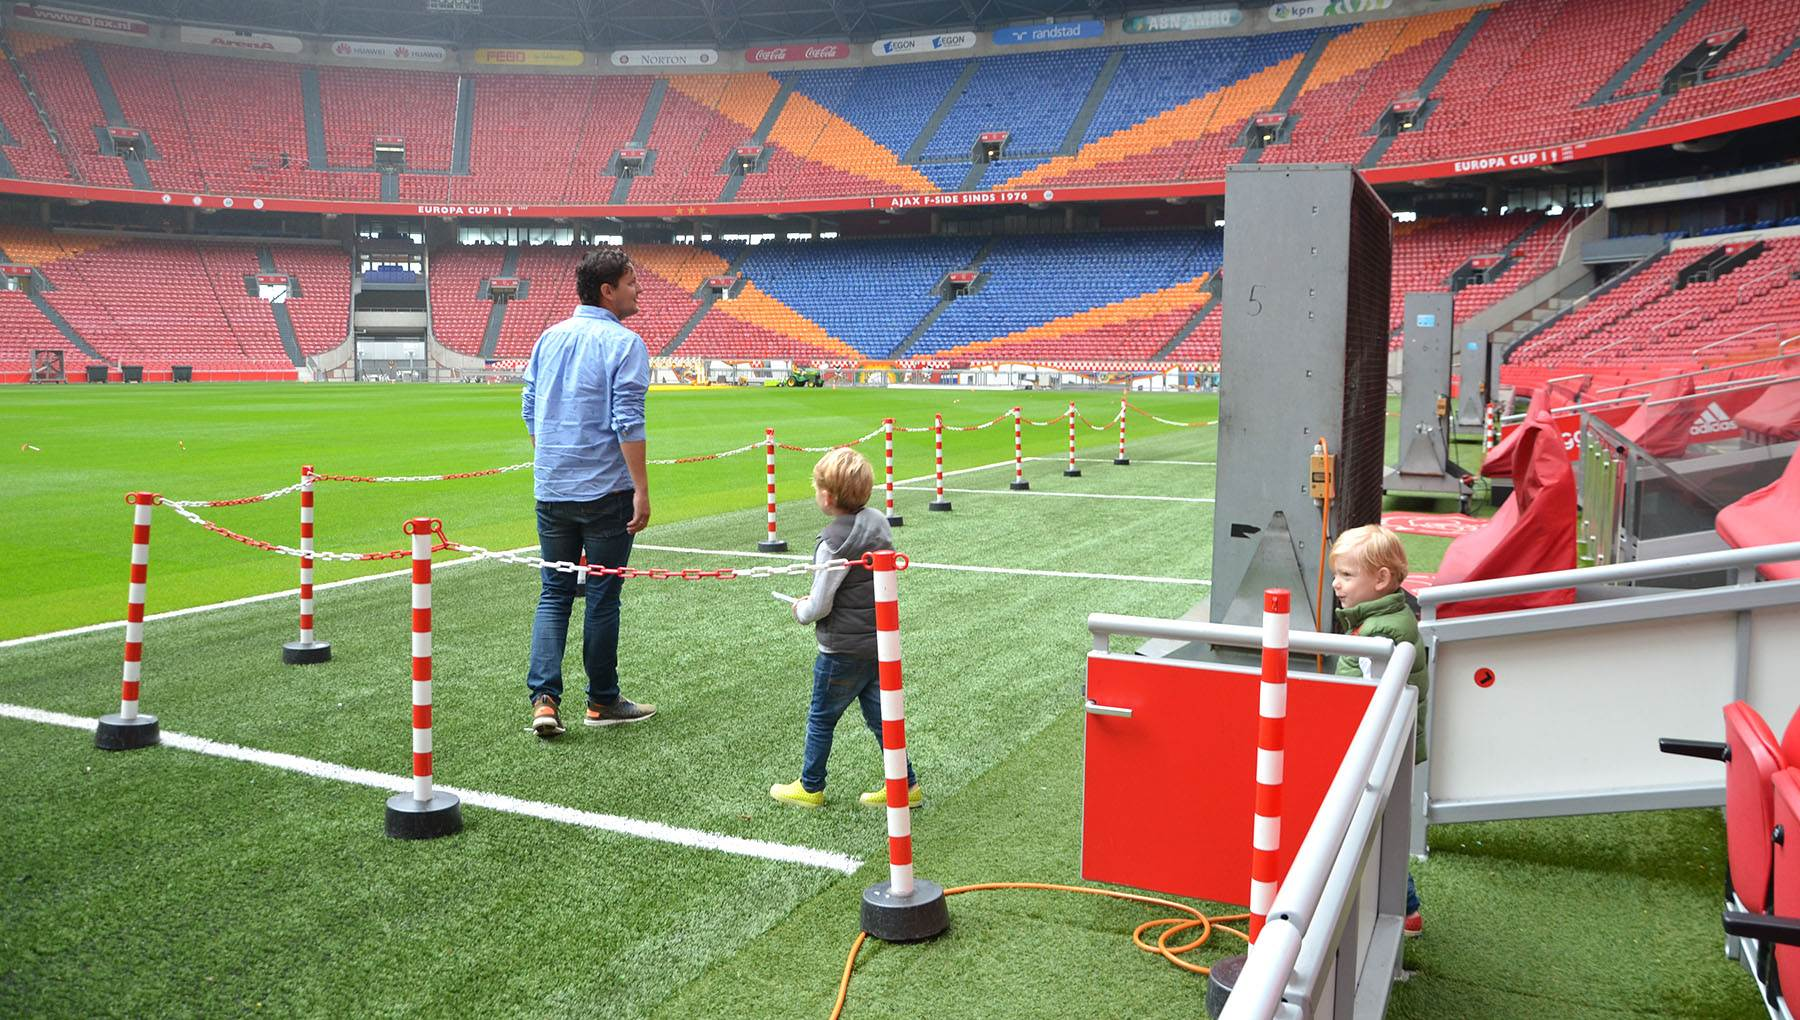 Football stadium Amsterdam